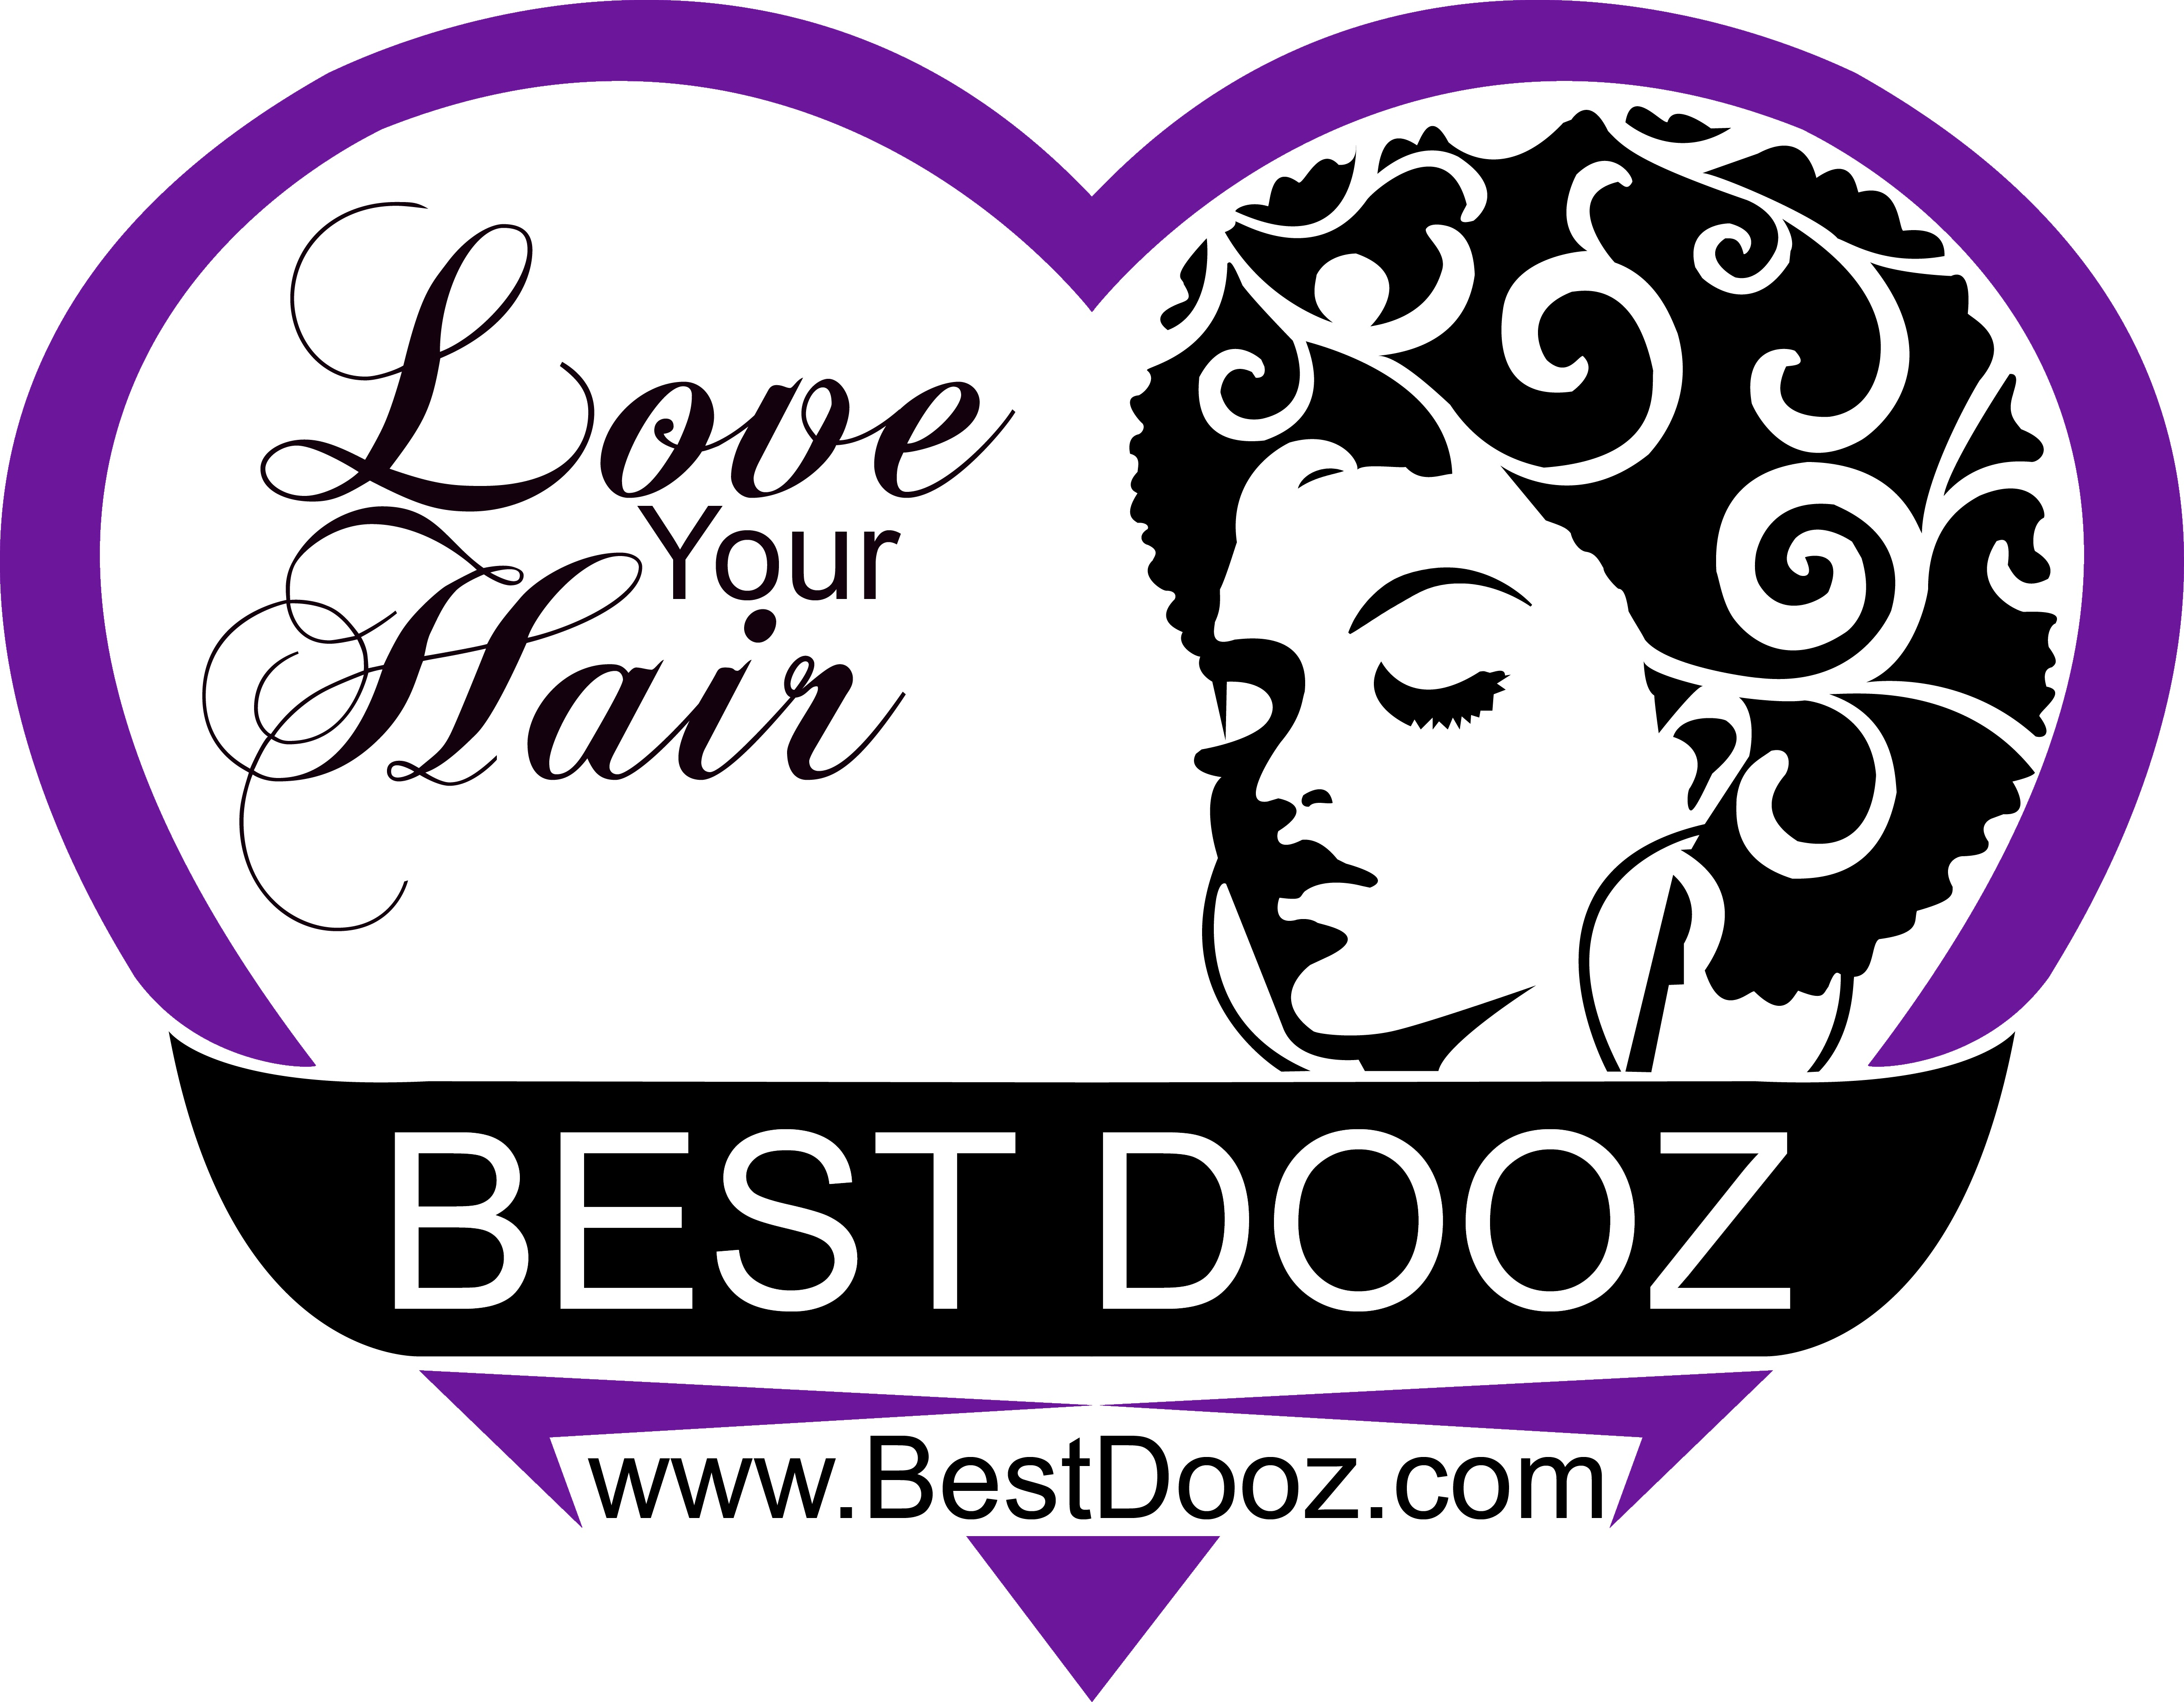 Join BestDooz.com and Share Your Style